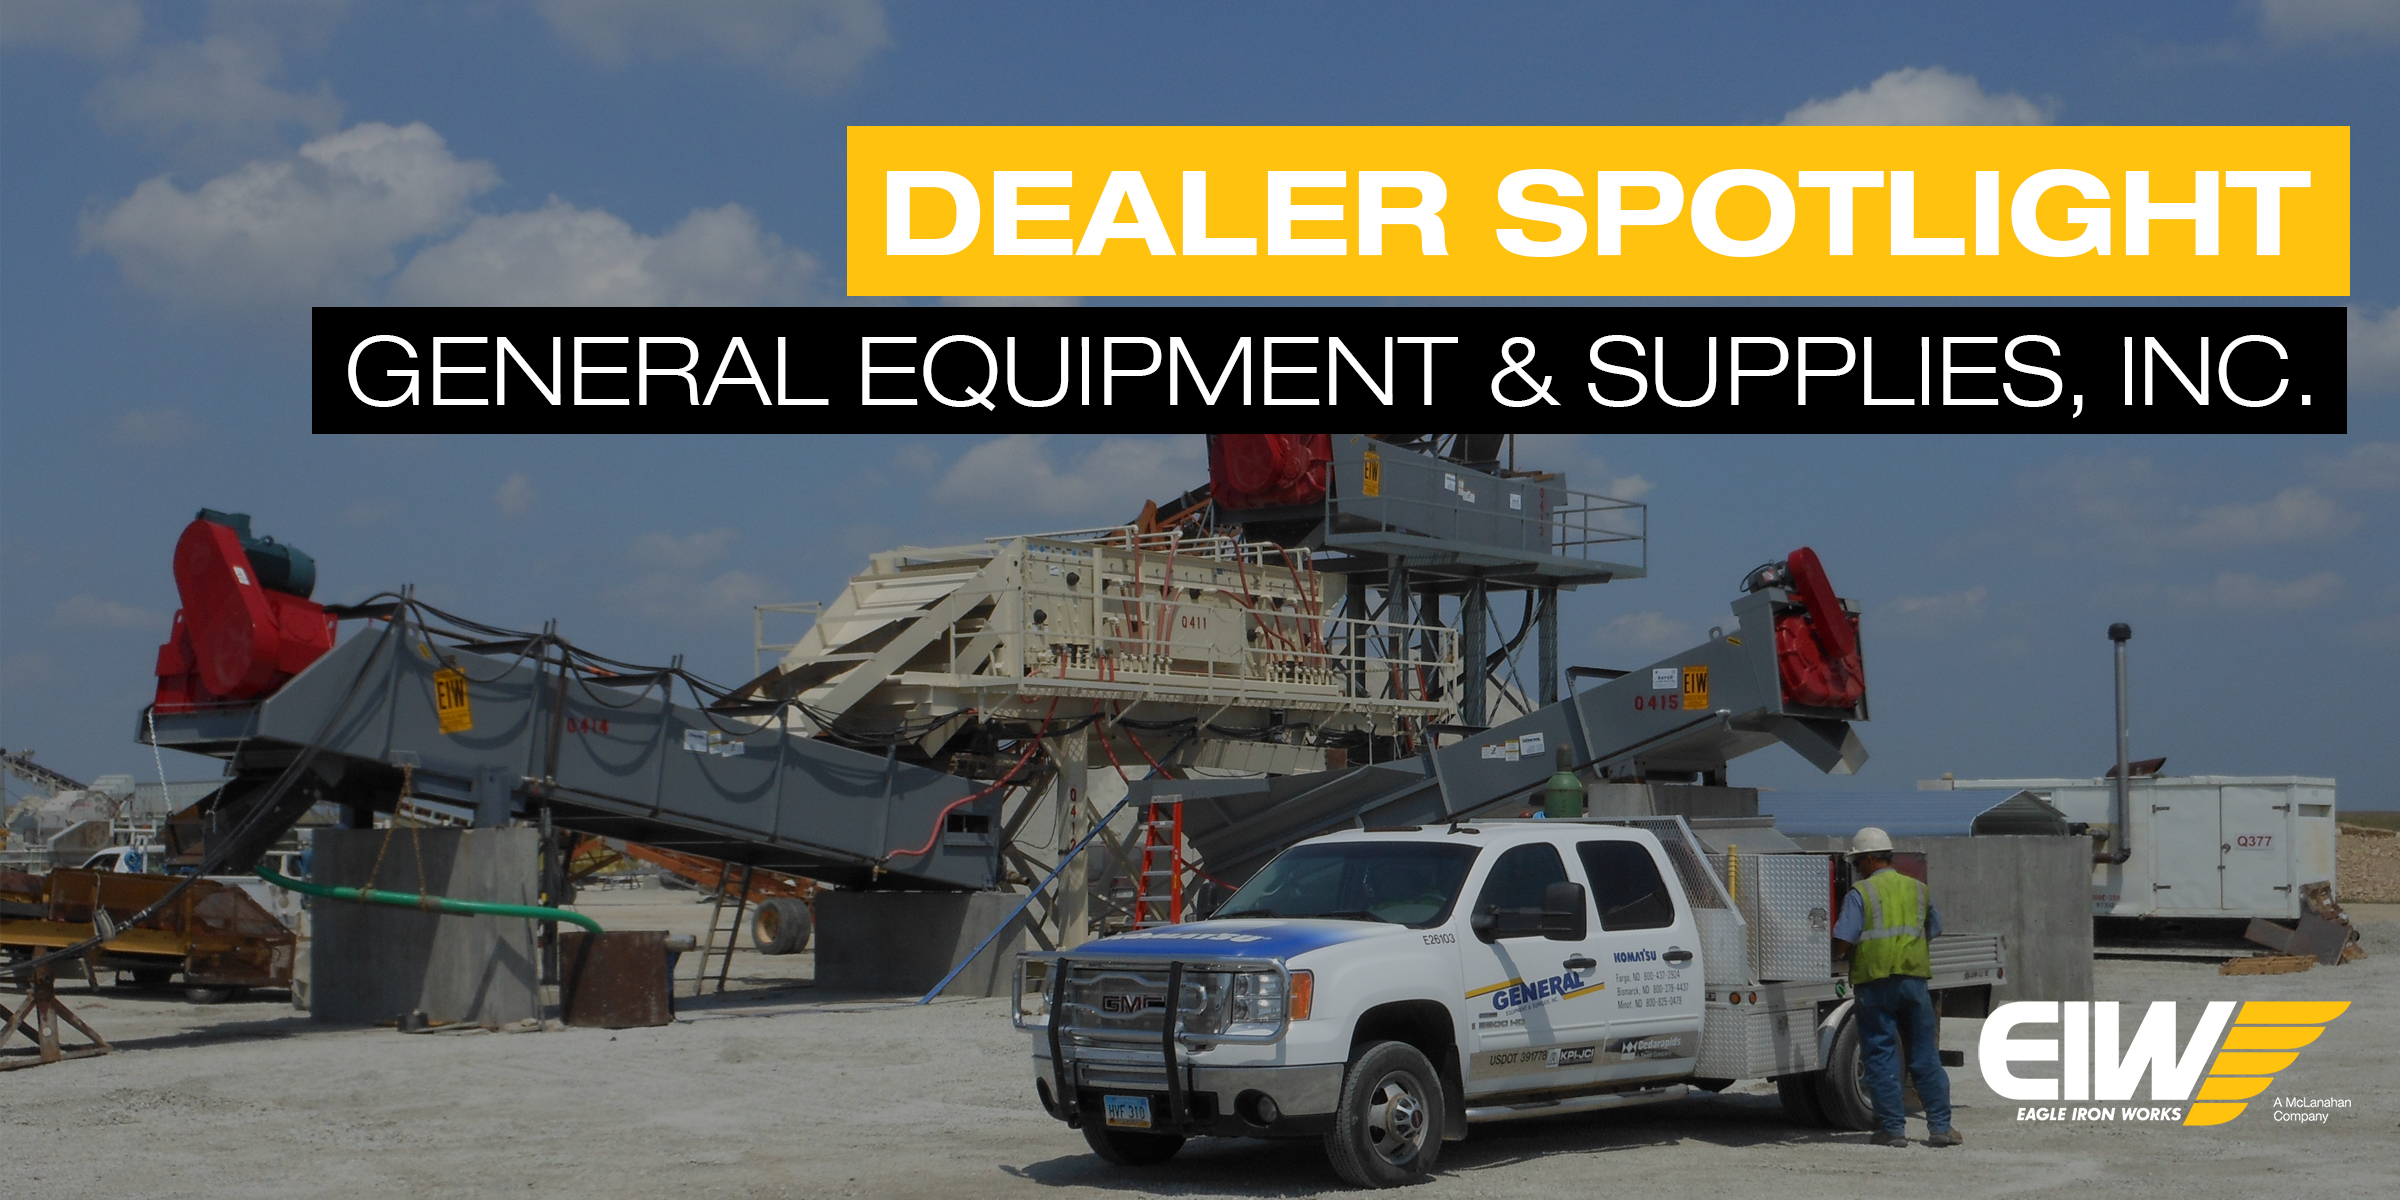 EIW equipment and General Equipment service truck on site.